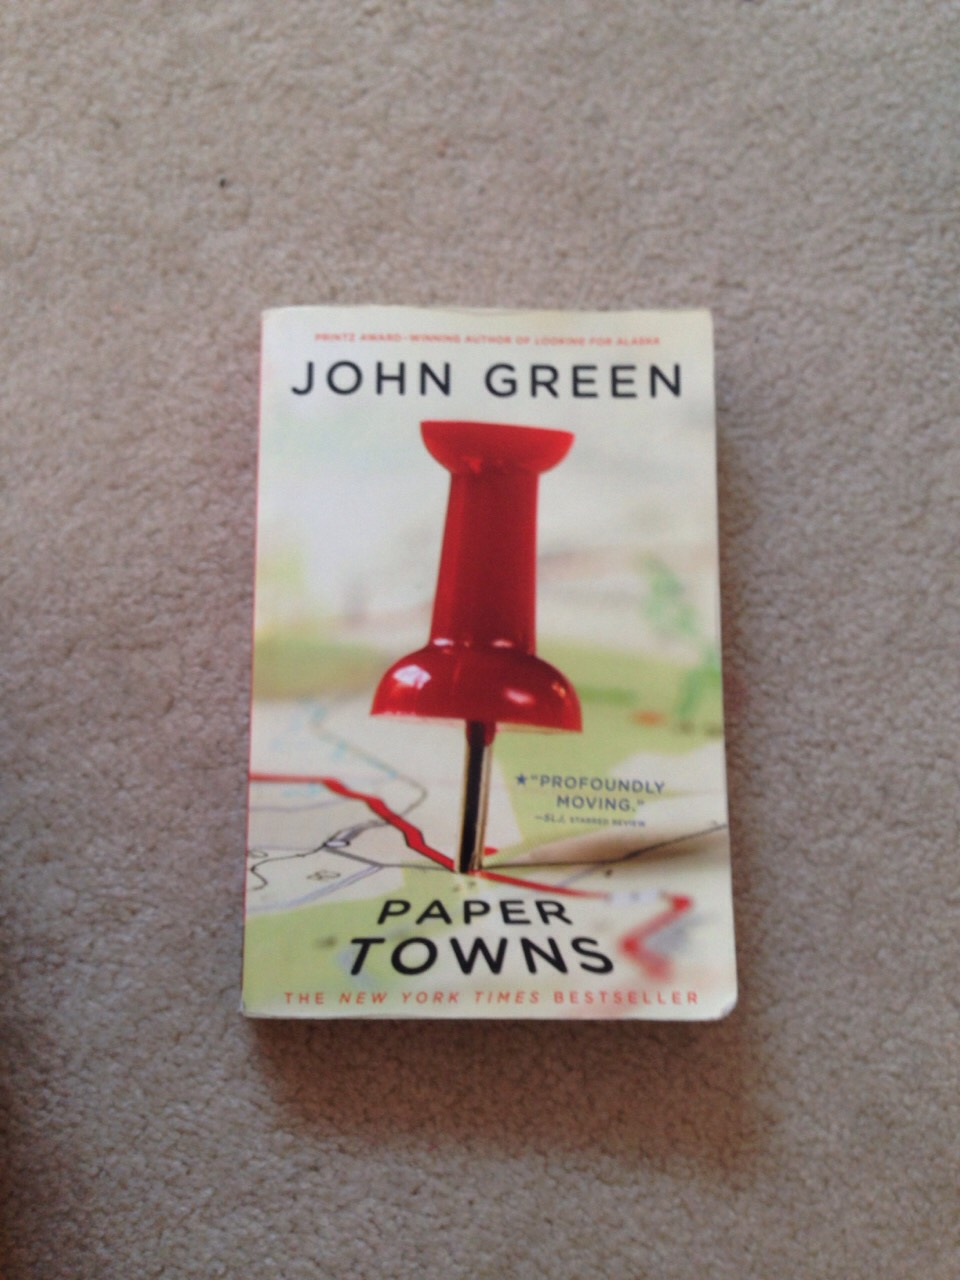 John green is an amazing author. I recommend all of his books (paper towns, the fault in our stars etc.)